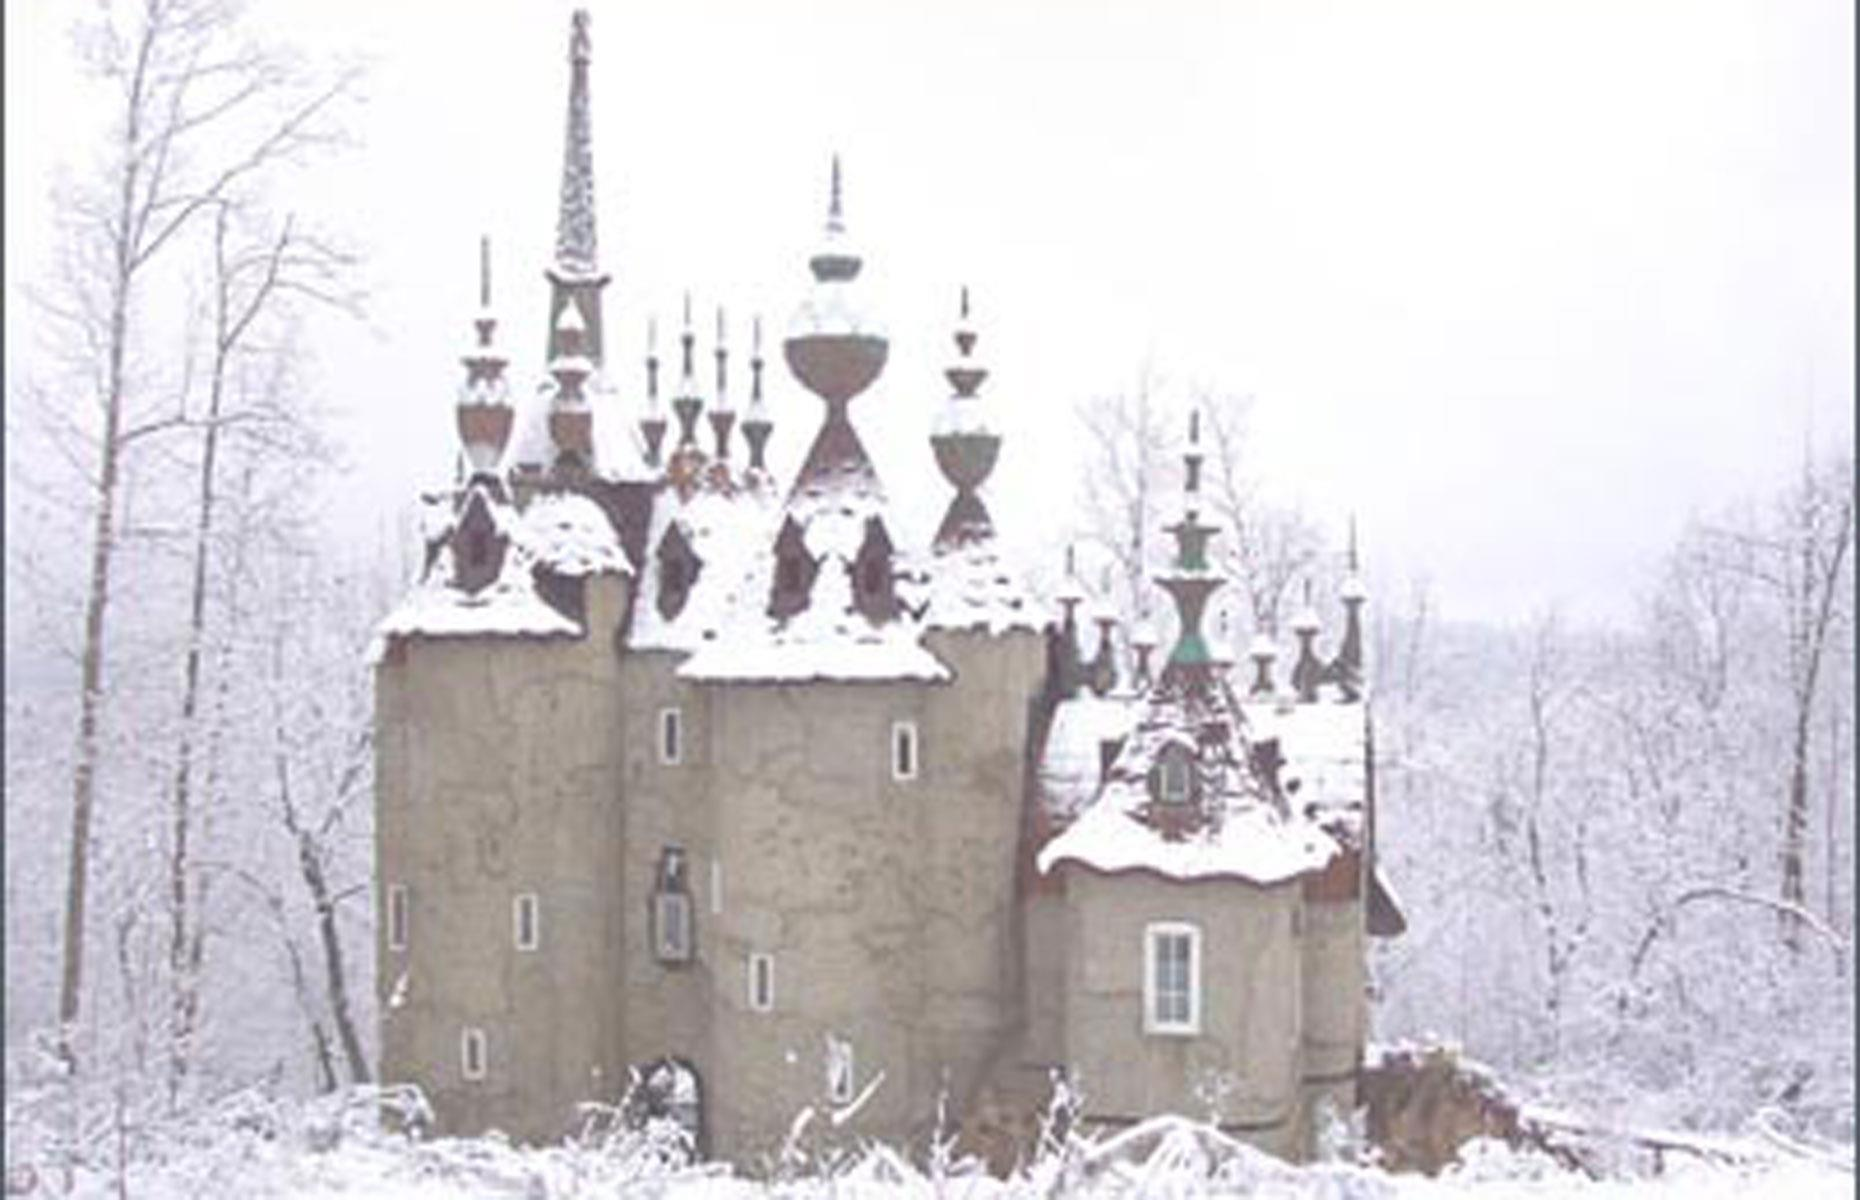 Slide 66 of 101: Straight out of a fairy tale, this fantastical castle in Rougemont was built by local sculptor Robert Mihaly to serve as his studio and home. The exterior was completed in 2005 but, for reasons unknown, Mihaly abandoned the property before he was able to finish the interior.